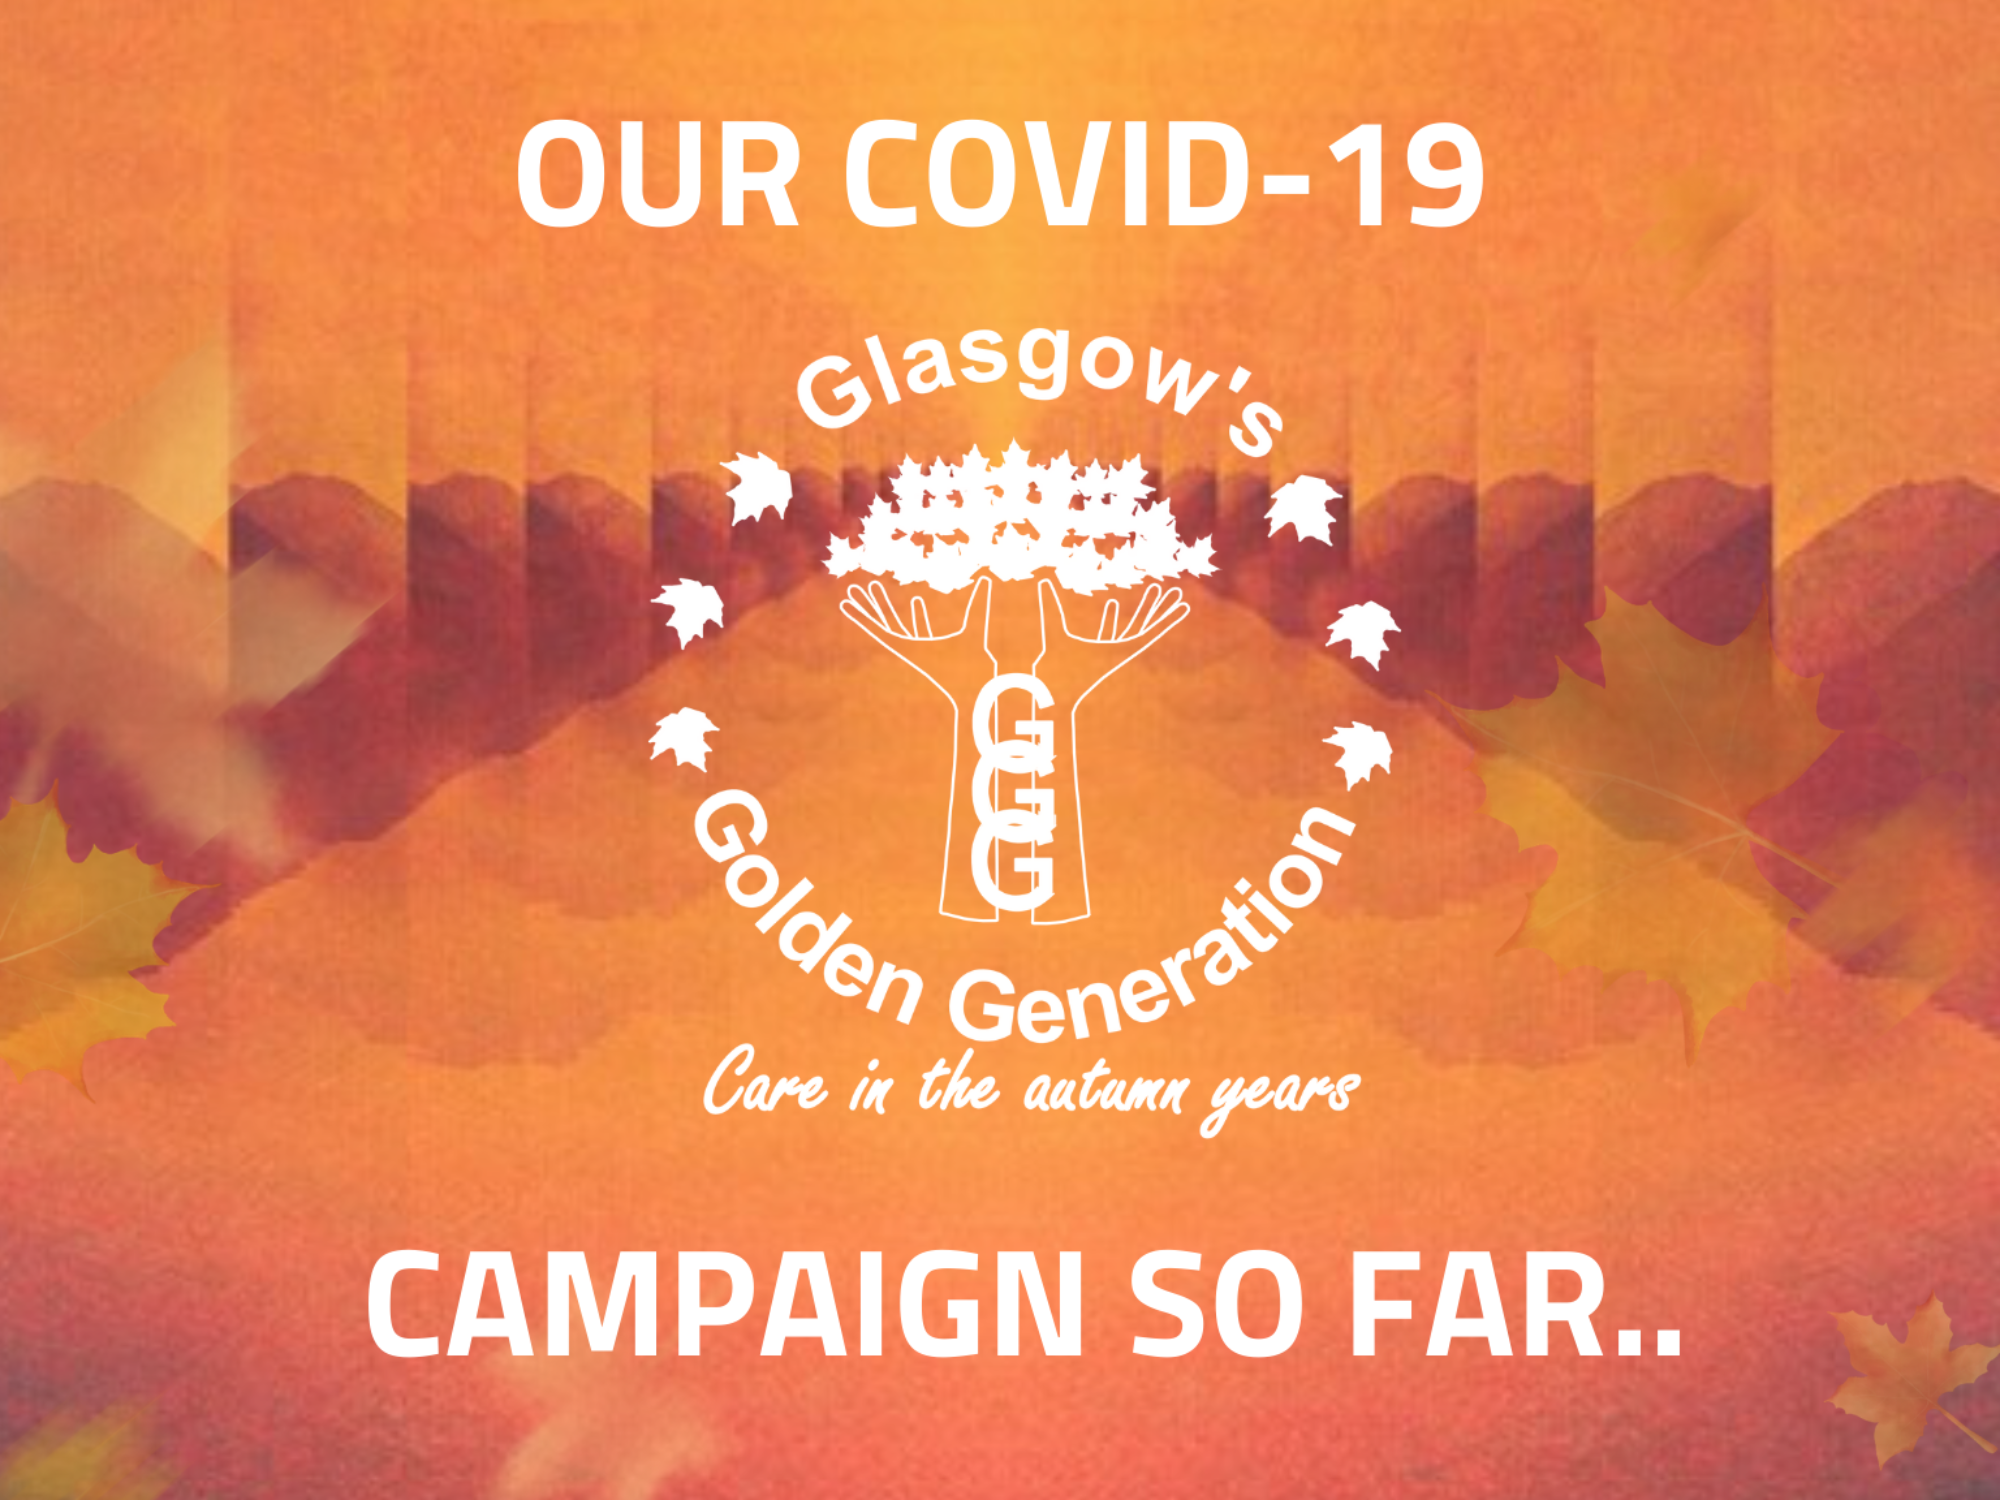 Our Covid-19 Campaign so far..